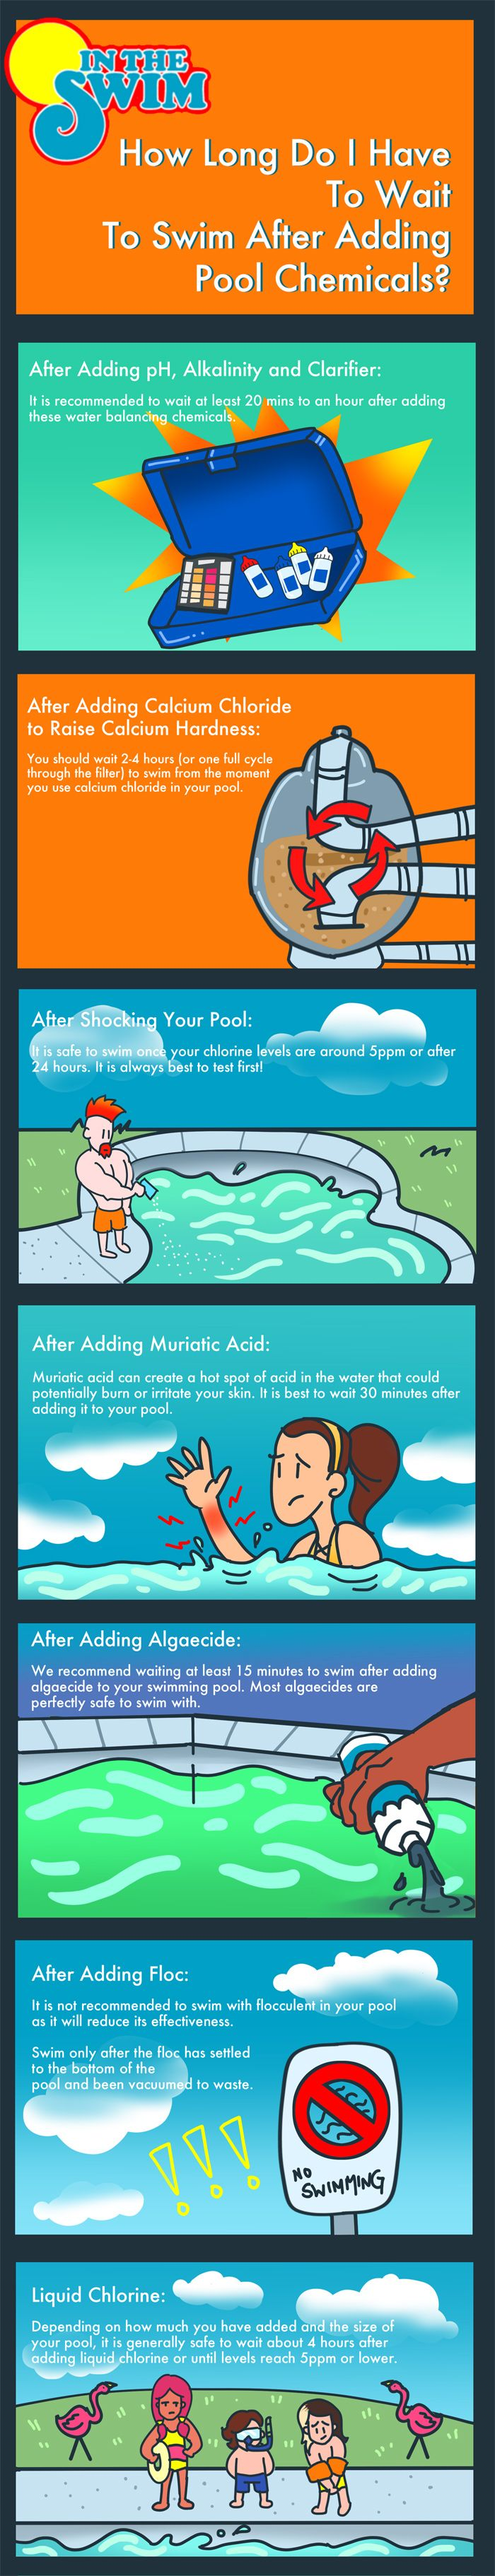 We Answer the Question of How Long You Should Wait To Swim After Adding These Common Pool Chemicals.